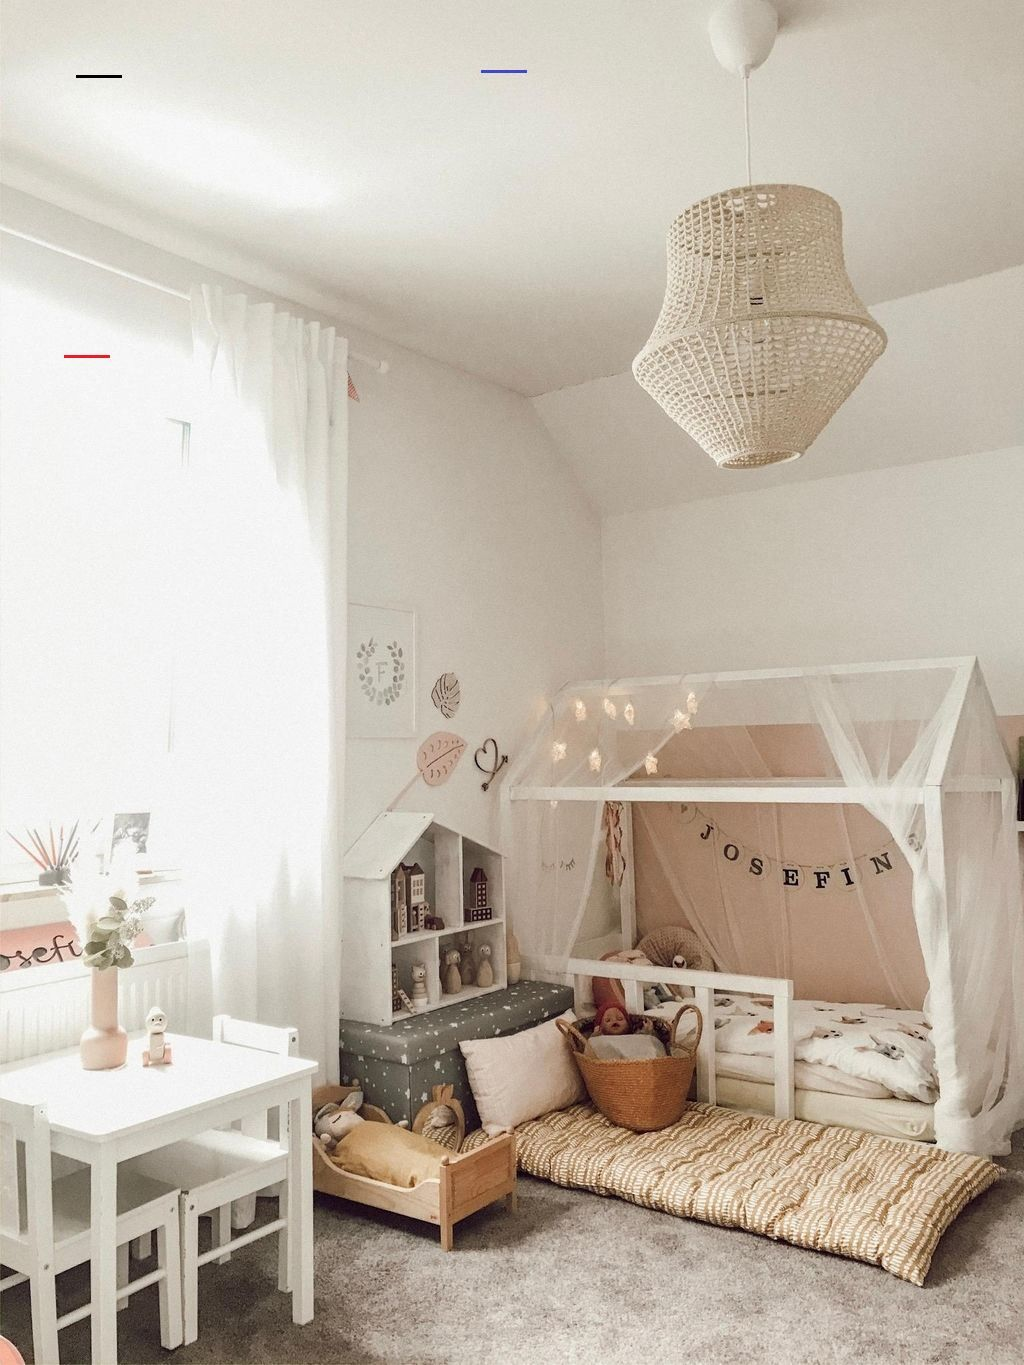 Kinderzimmer Ideen Für Wohlfühl Buden So Geht S Kinderzimmermädchen Vom Niedlichen Babyzimmer Zum Coolen Jug In 2020 Girls Bedroom Themes Girl Room Kids Bedroom